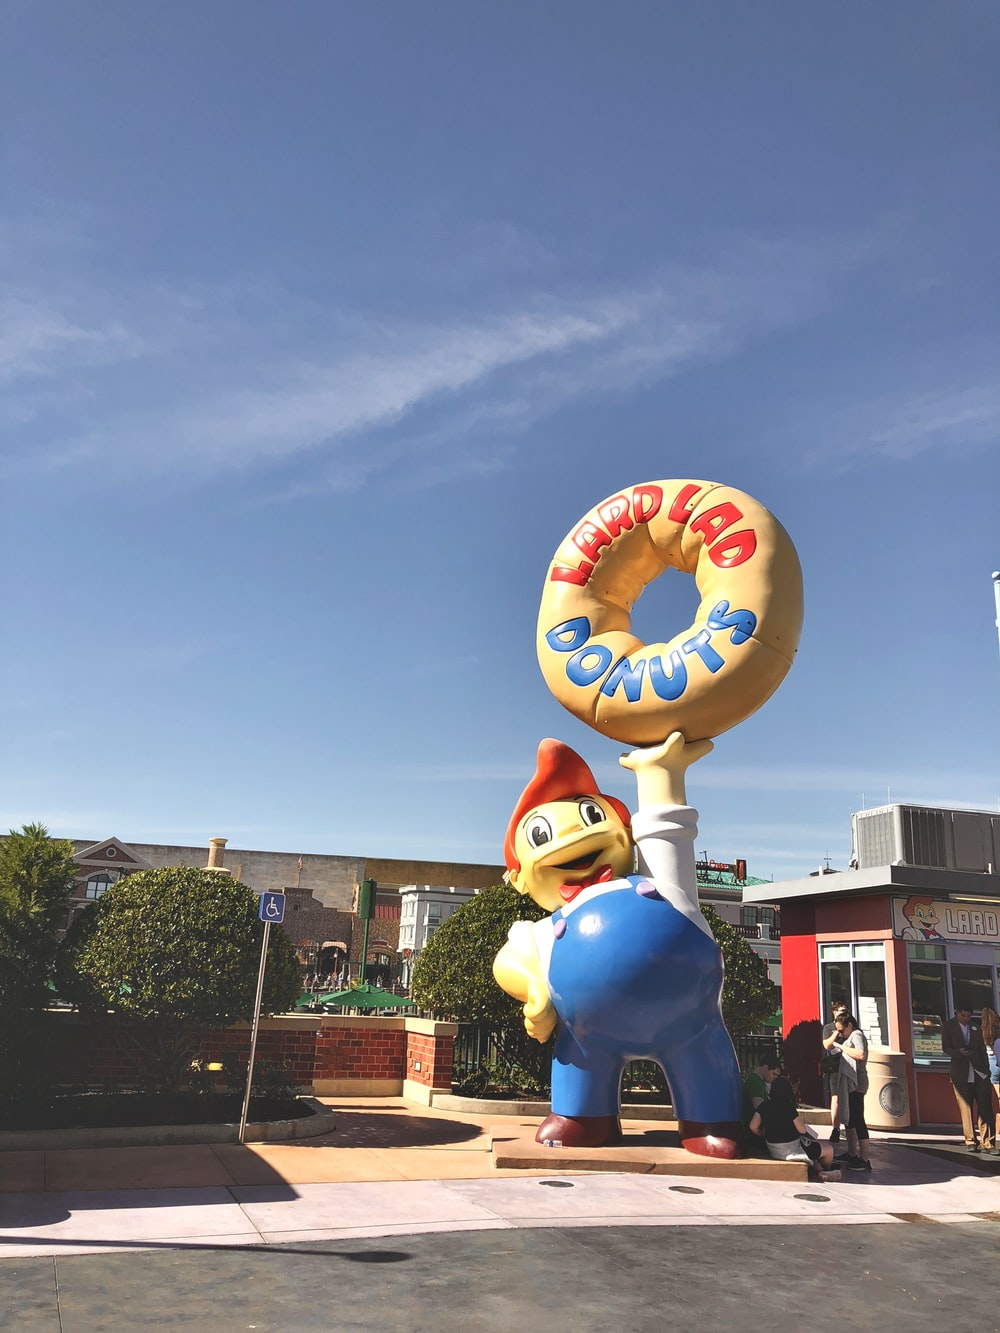 blue and white character carrying doughnut statue